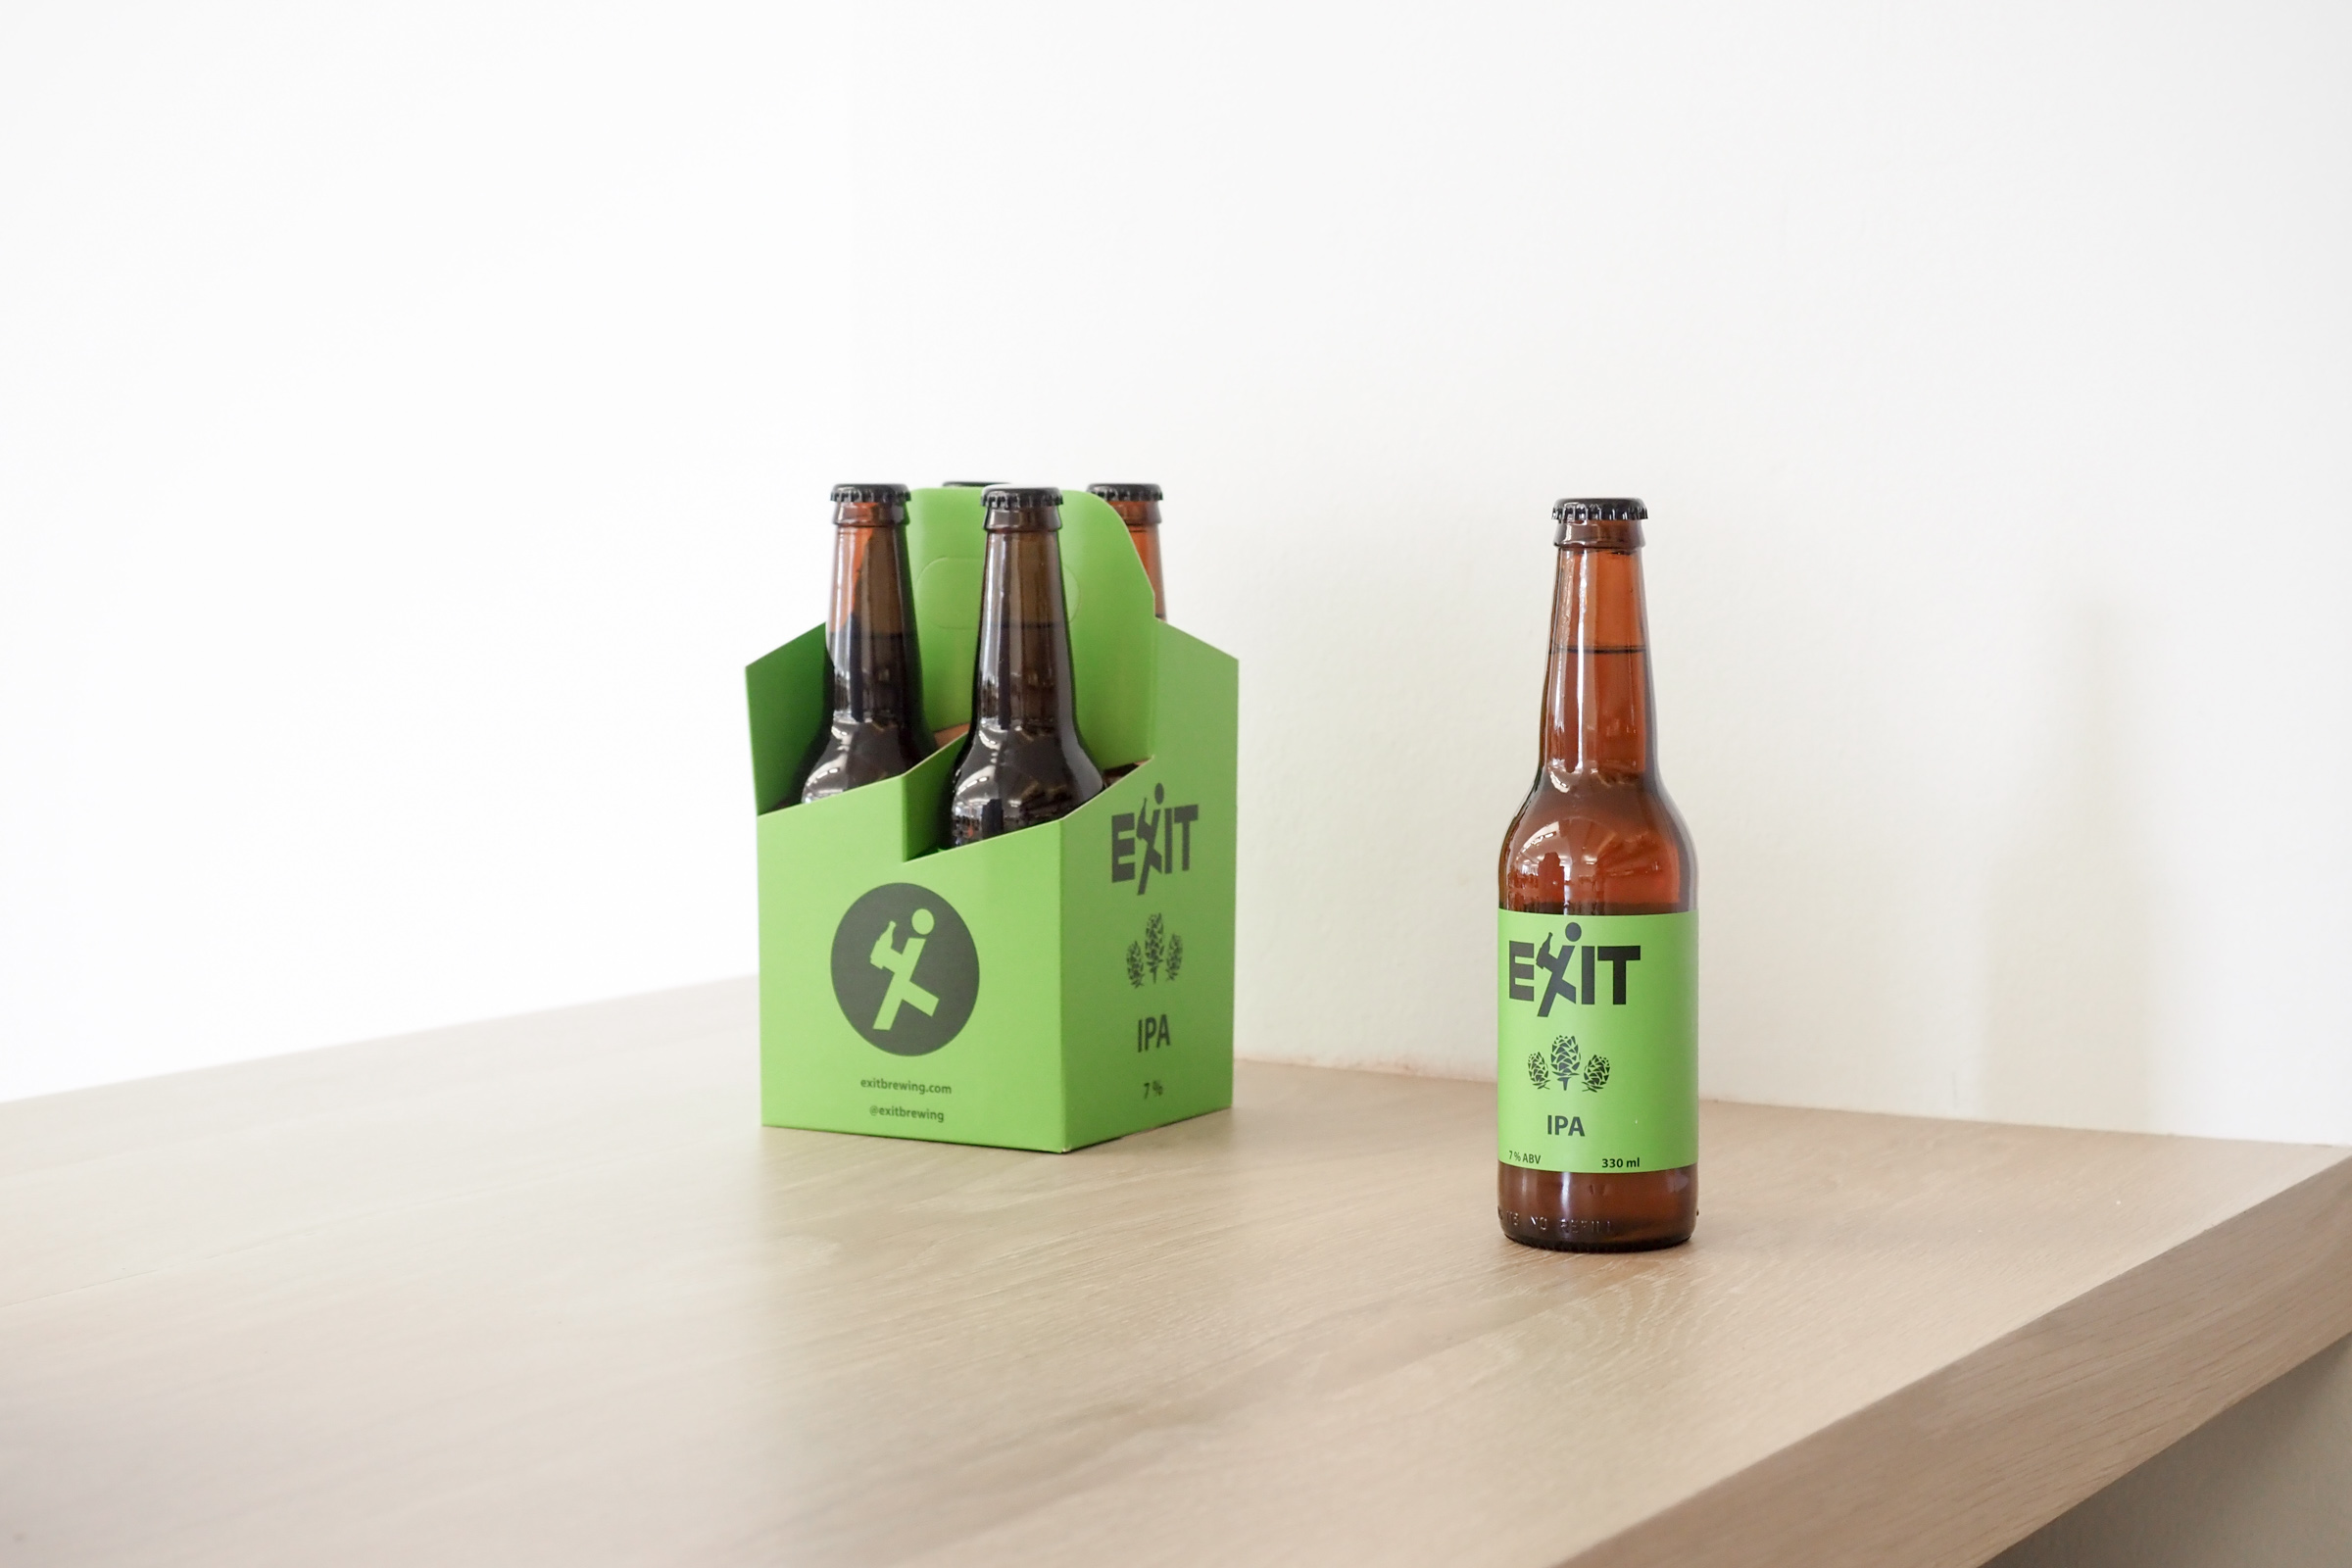 Monthly Beer Digest: Exit IPA Review - Hey Gents